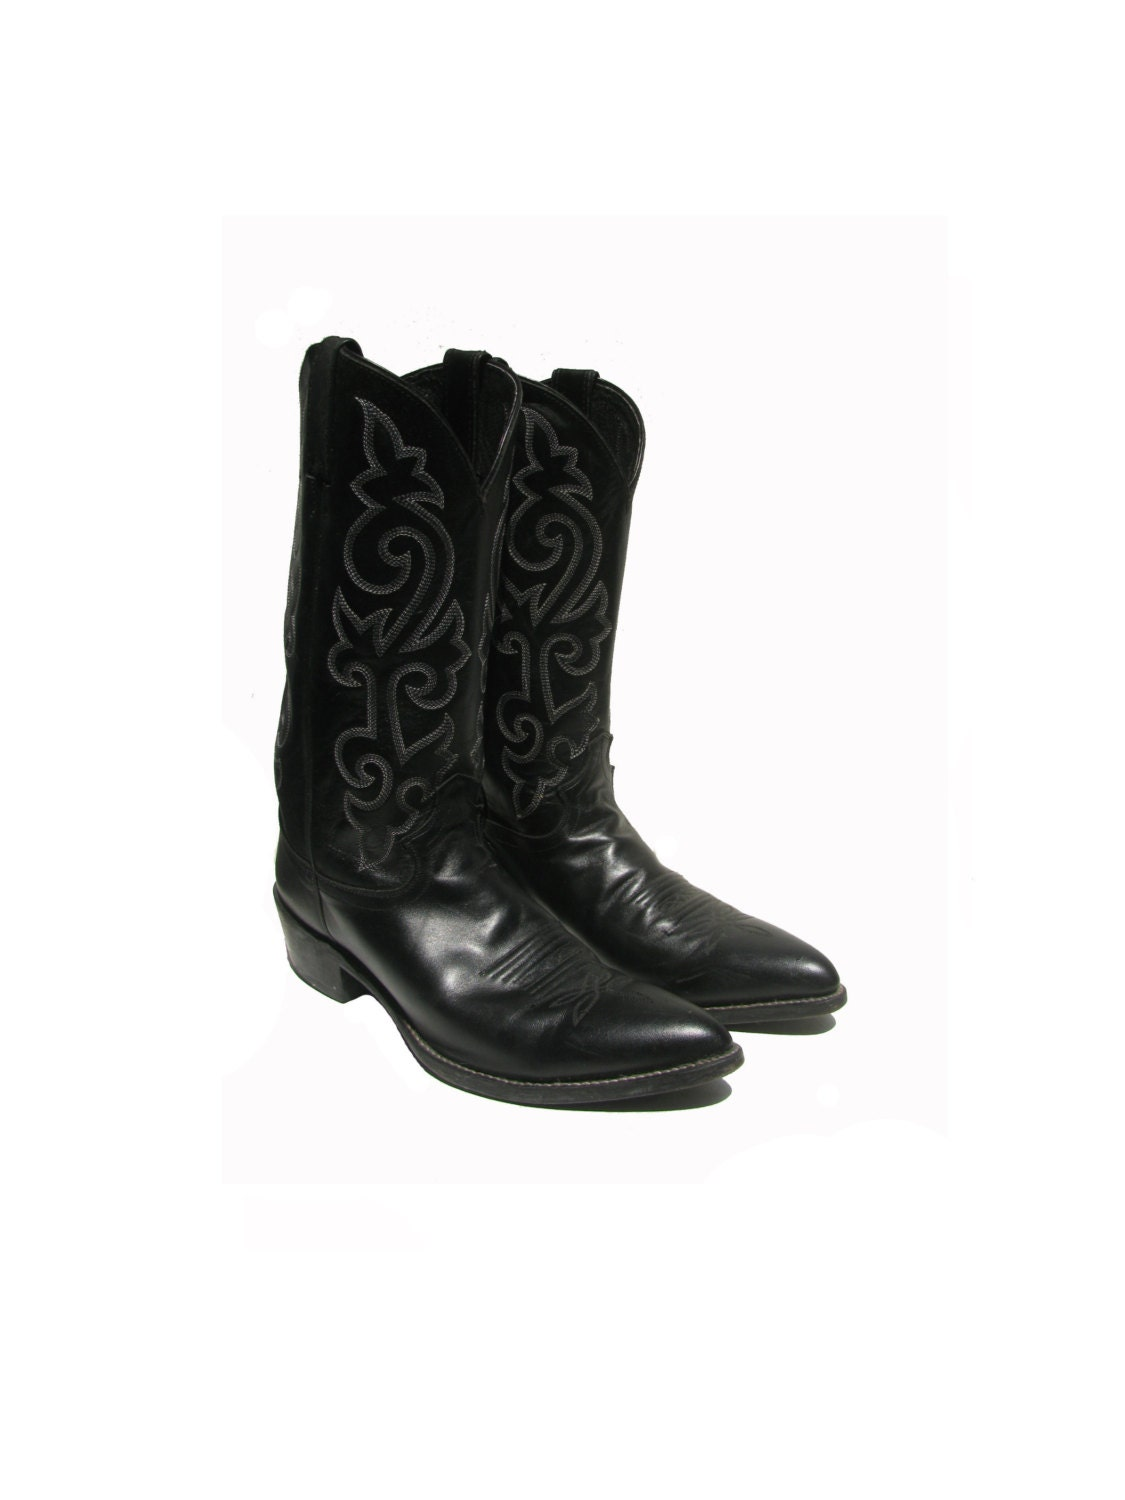 vintage cowboy boots mens justin black leather western boots